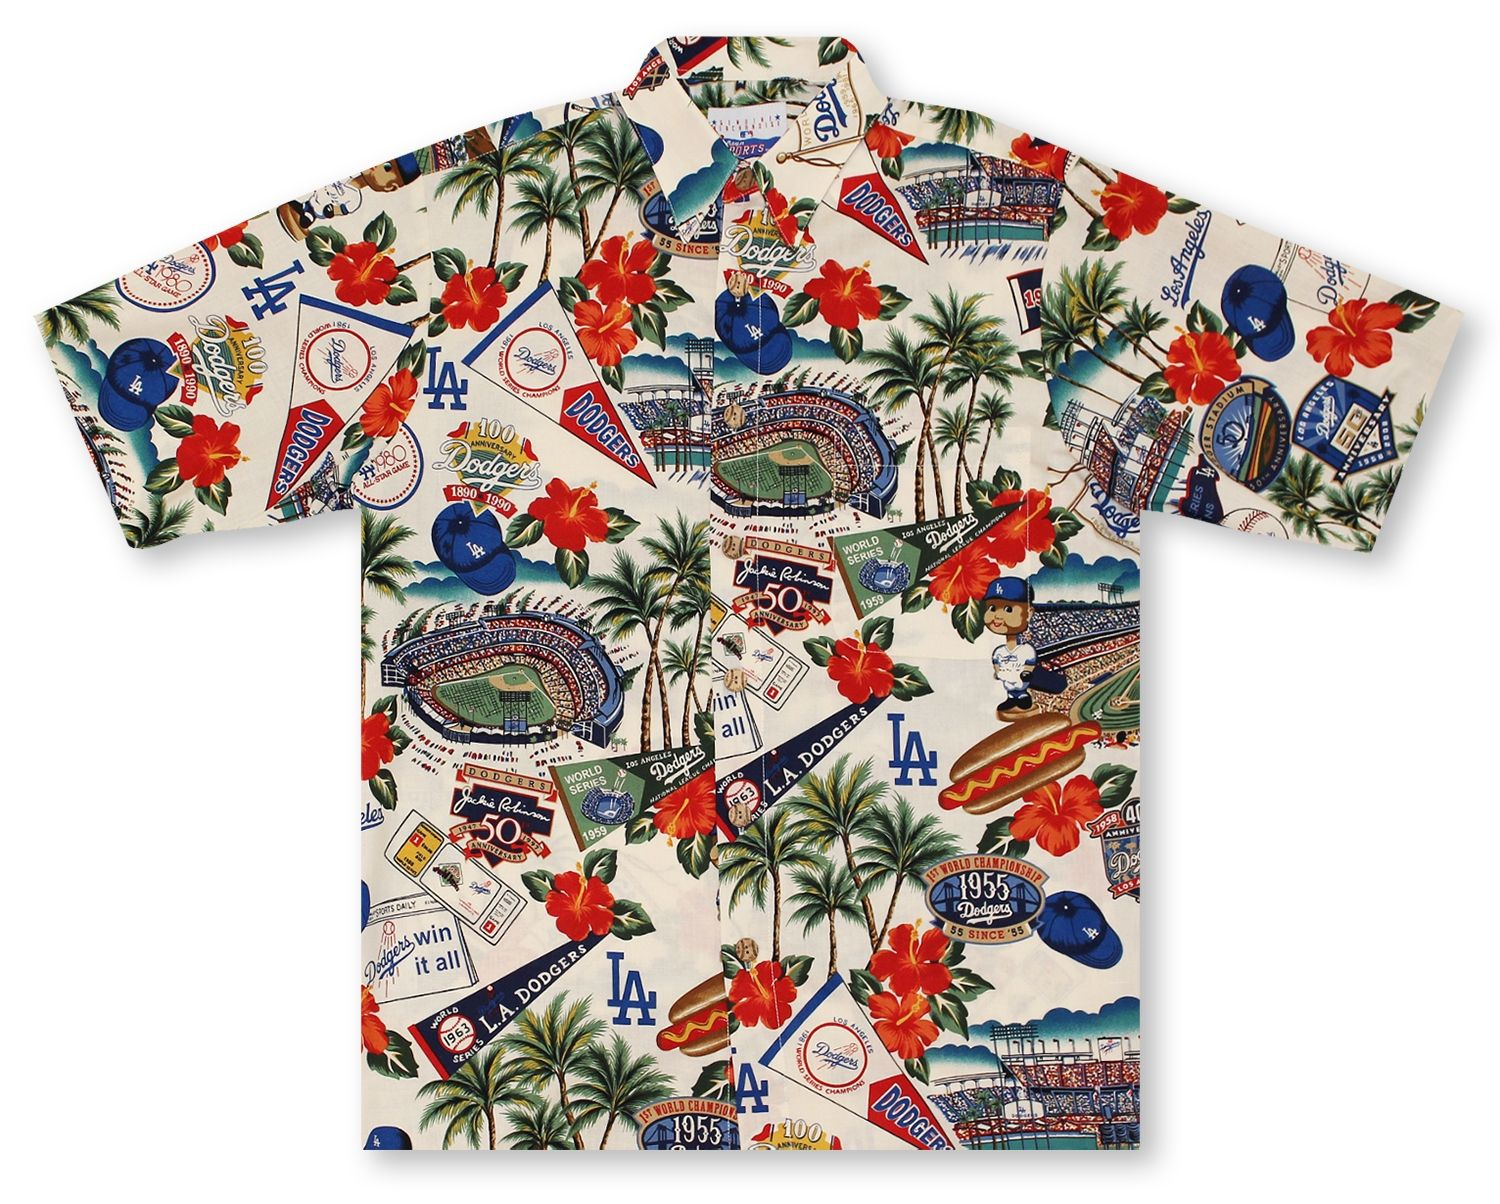 8e0cd9ba Reyn Spooner Hawaiian Shirts From Aloha Shirt Shop | Reyn Spooner MLB Los  Angeles Dodgers 2015 | RSB-43